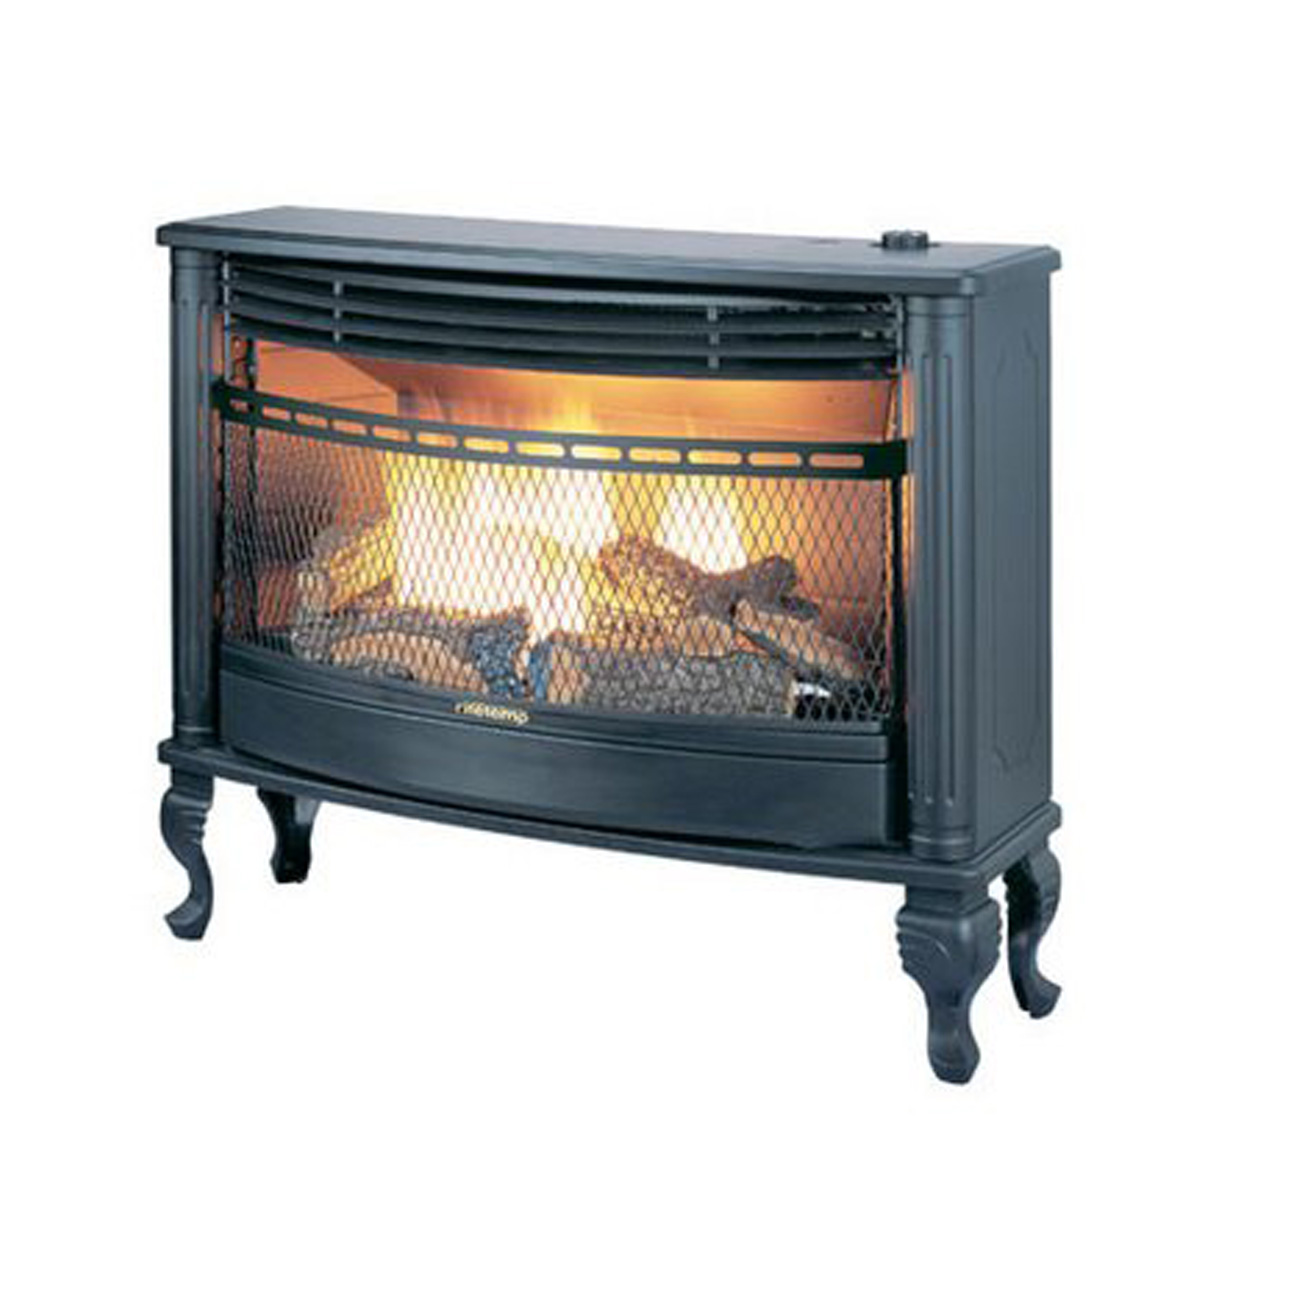 Charmglow Ventless Gas Stove Series CG - ProCom Heating